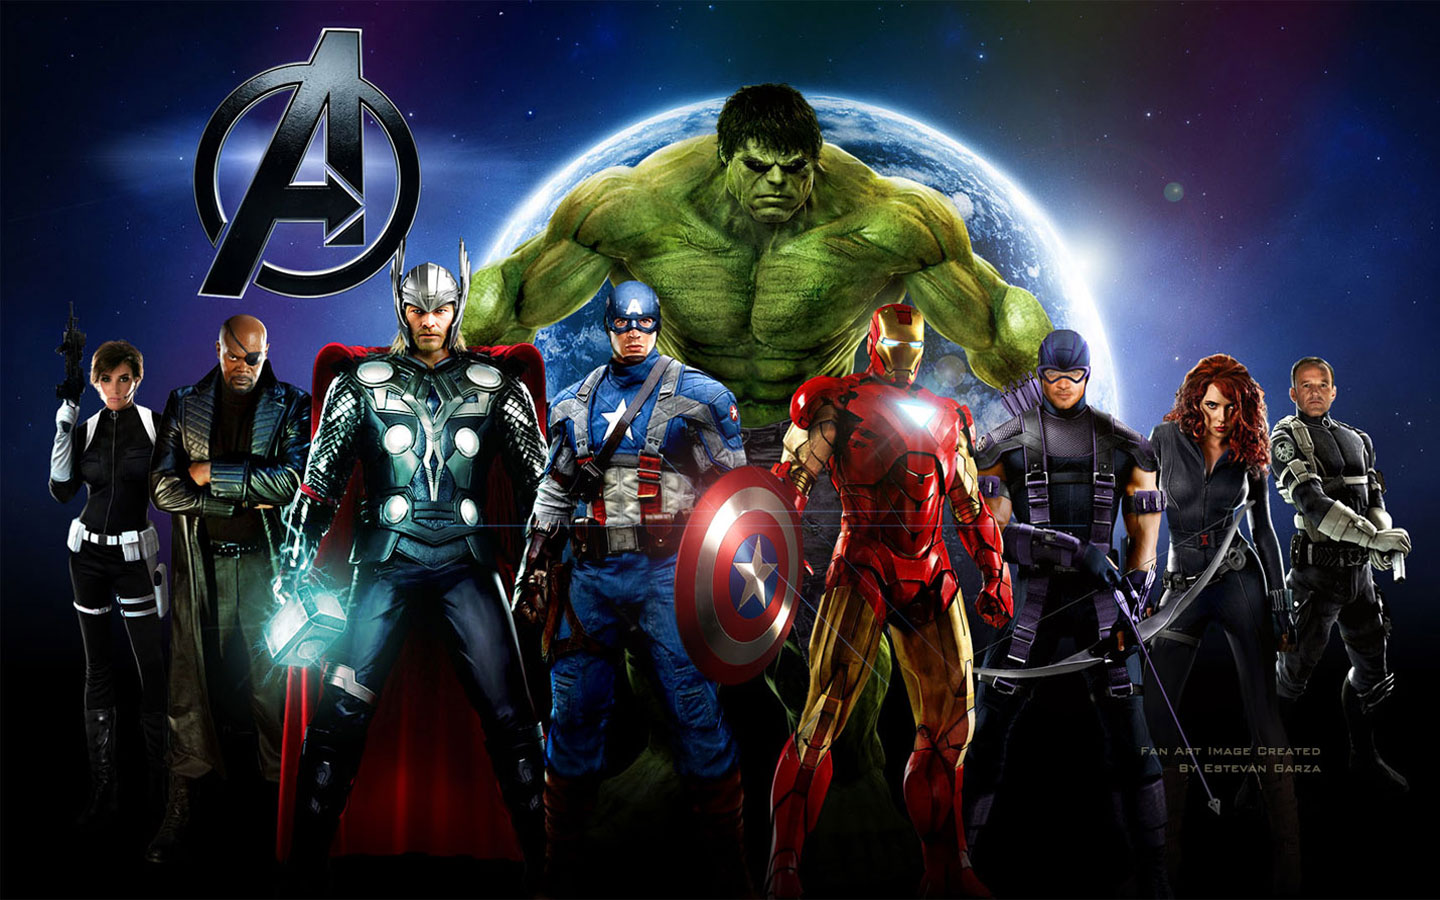 Digital HD Wallpapers The Avengers HD Wallpapers Pack [Set 2] 1440x900